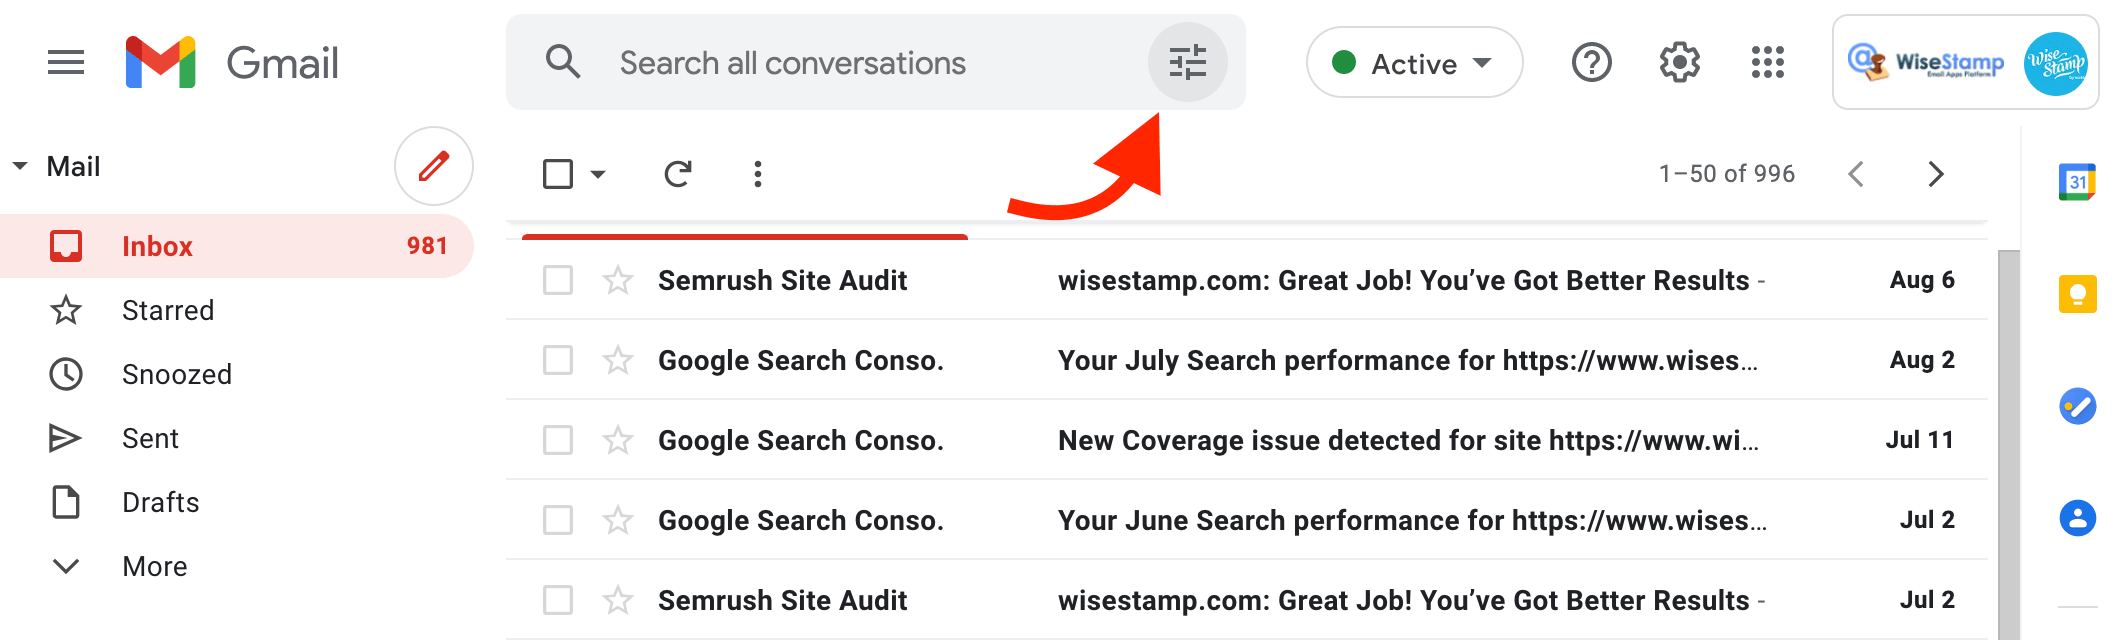 use Gmail search to sort Gmail inbox